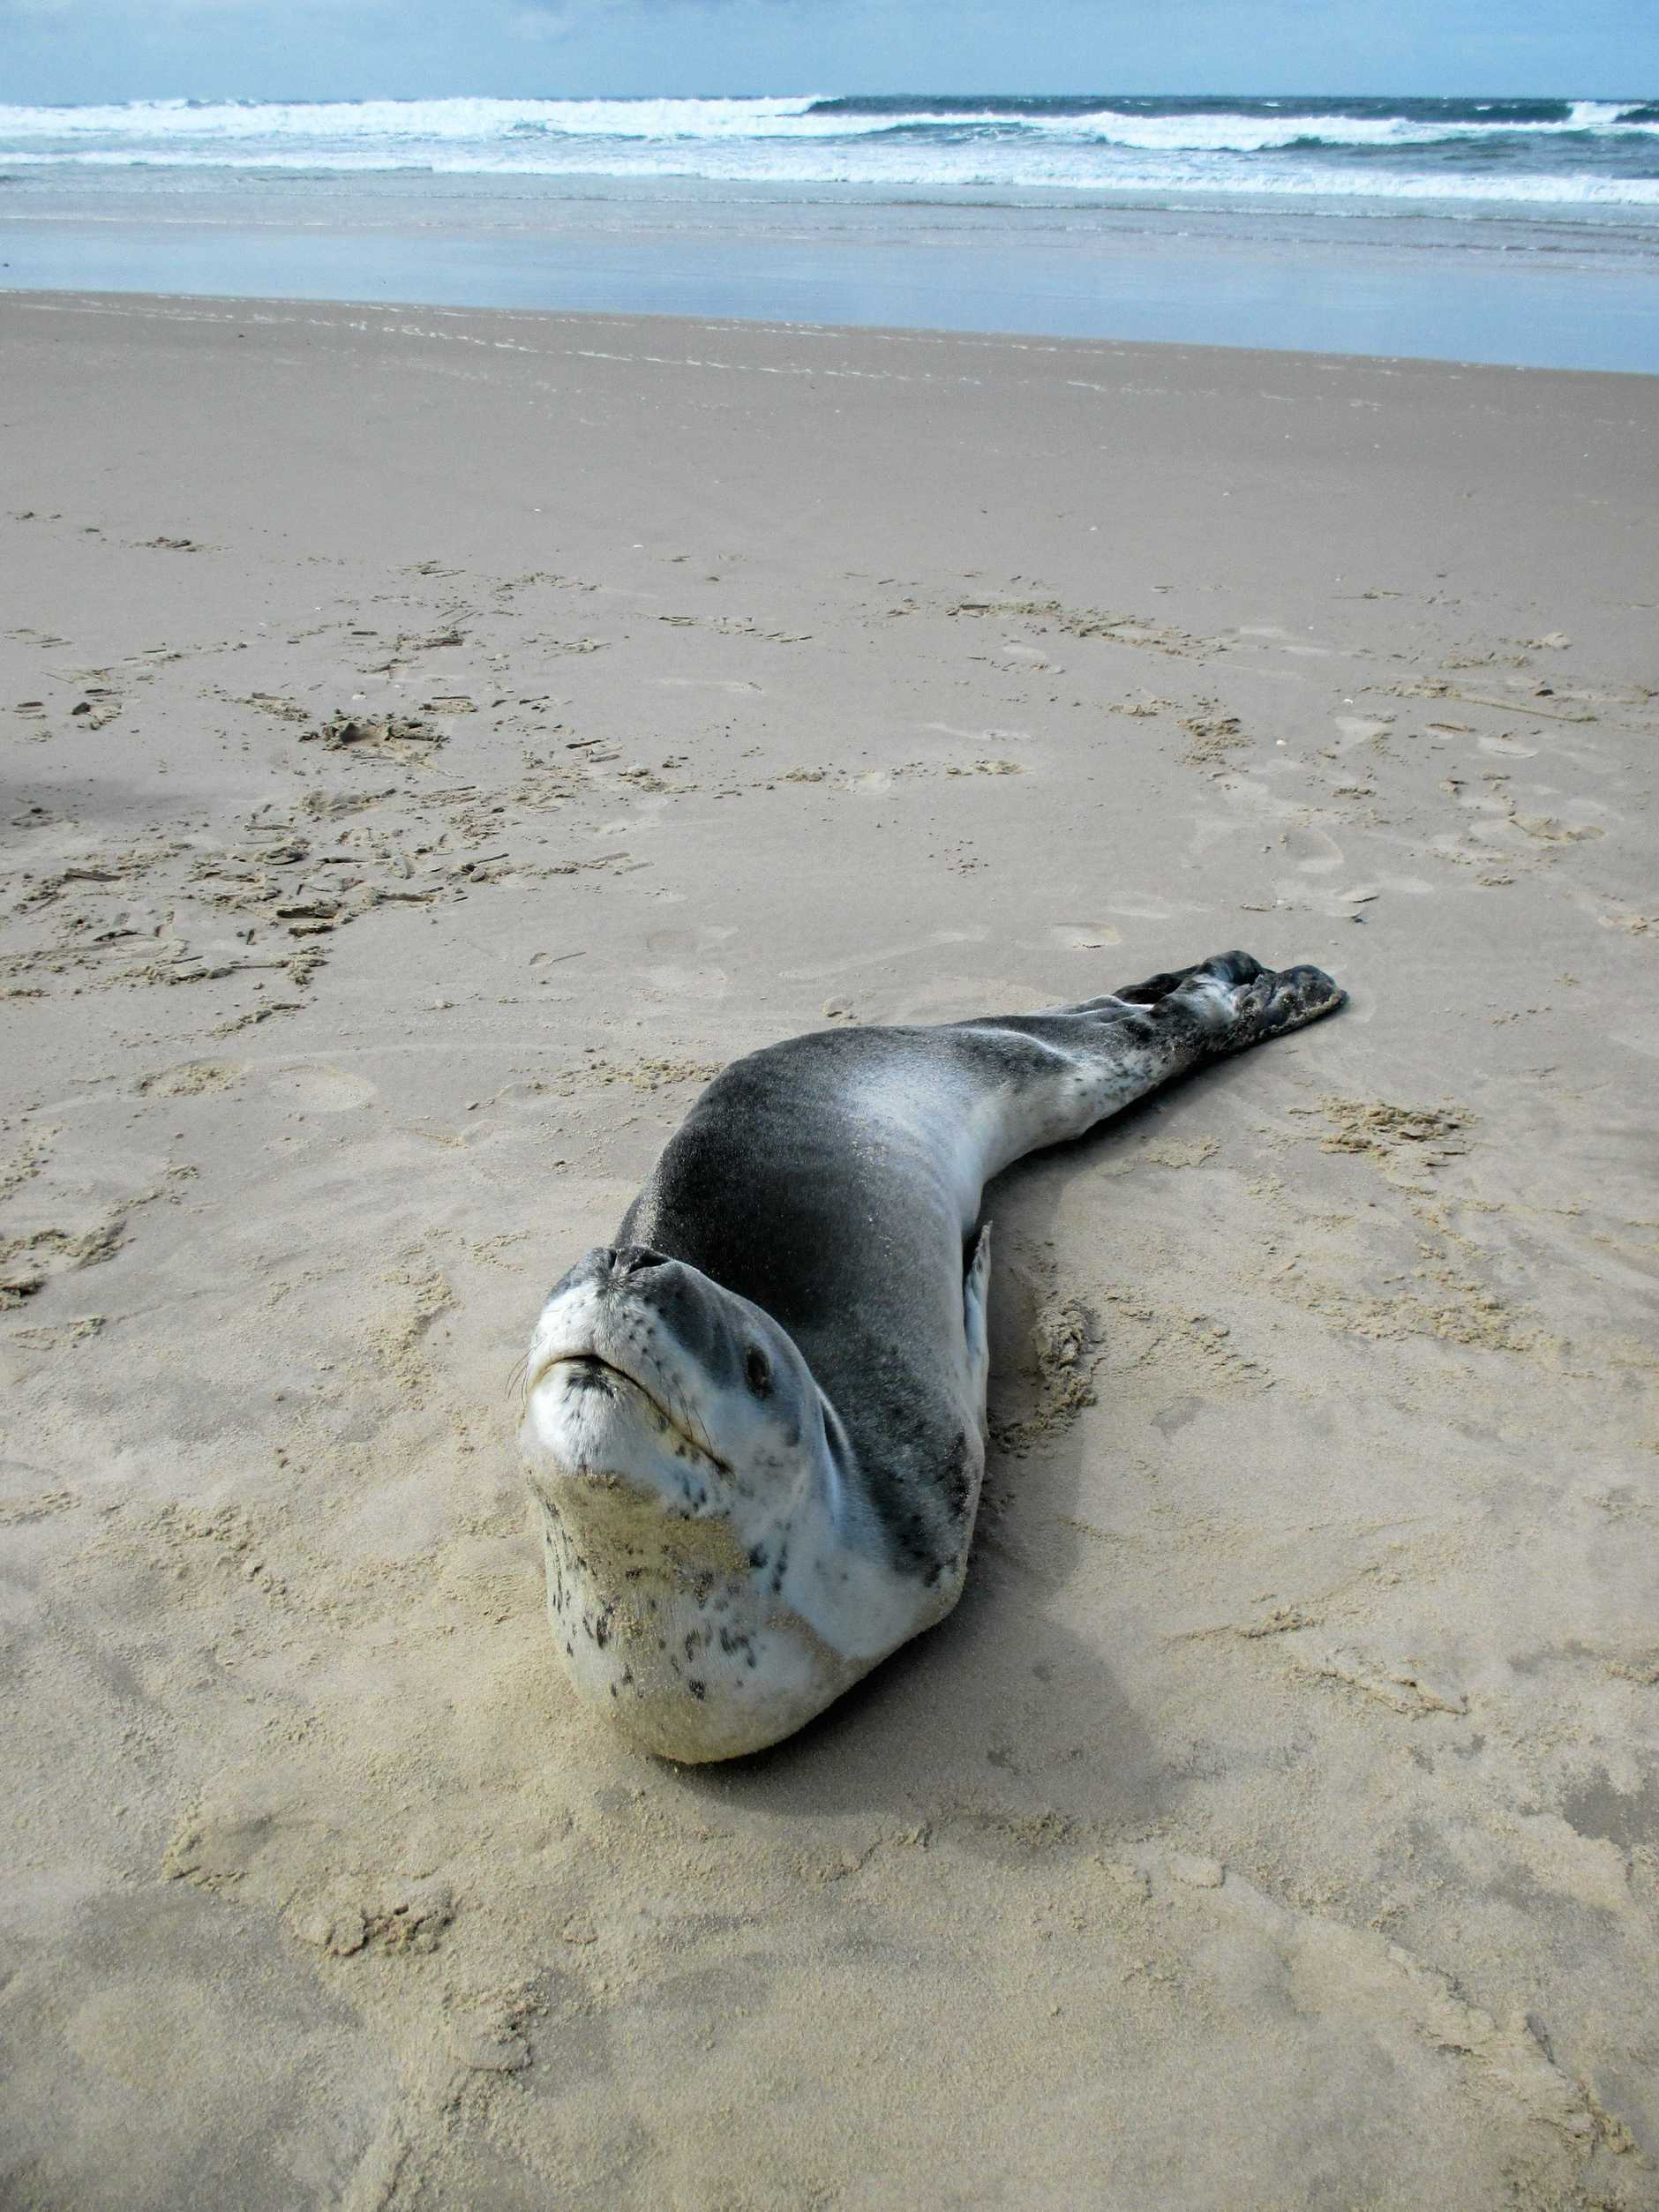 In a rare sight, a leopard seal was spotted sight on a Clarence Coast beach.